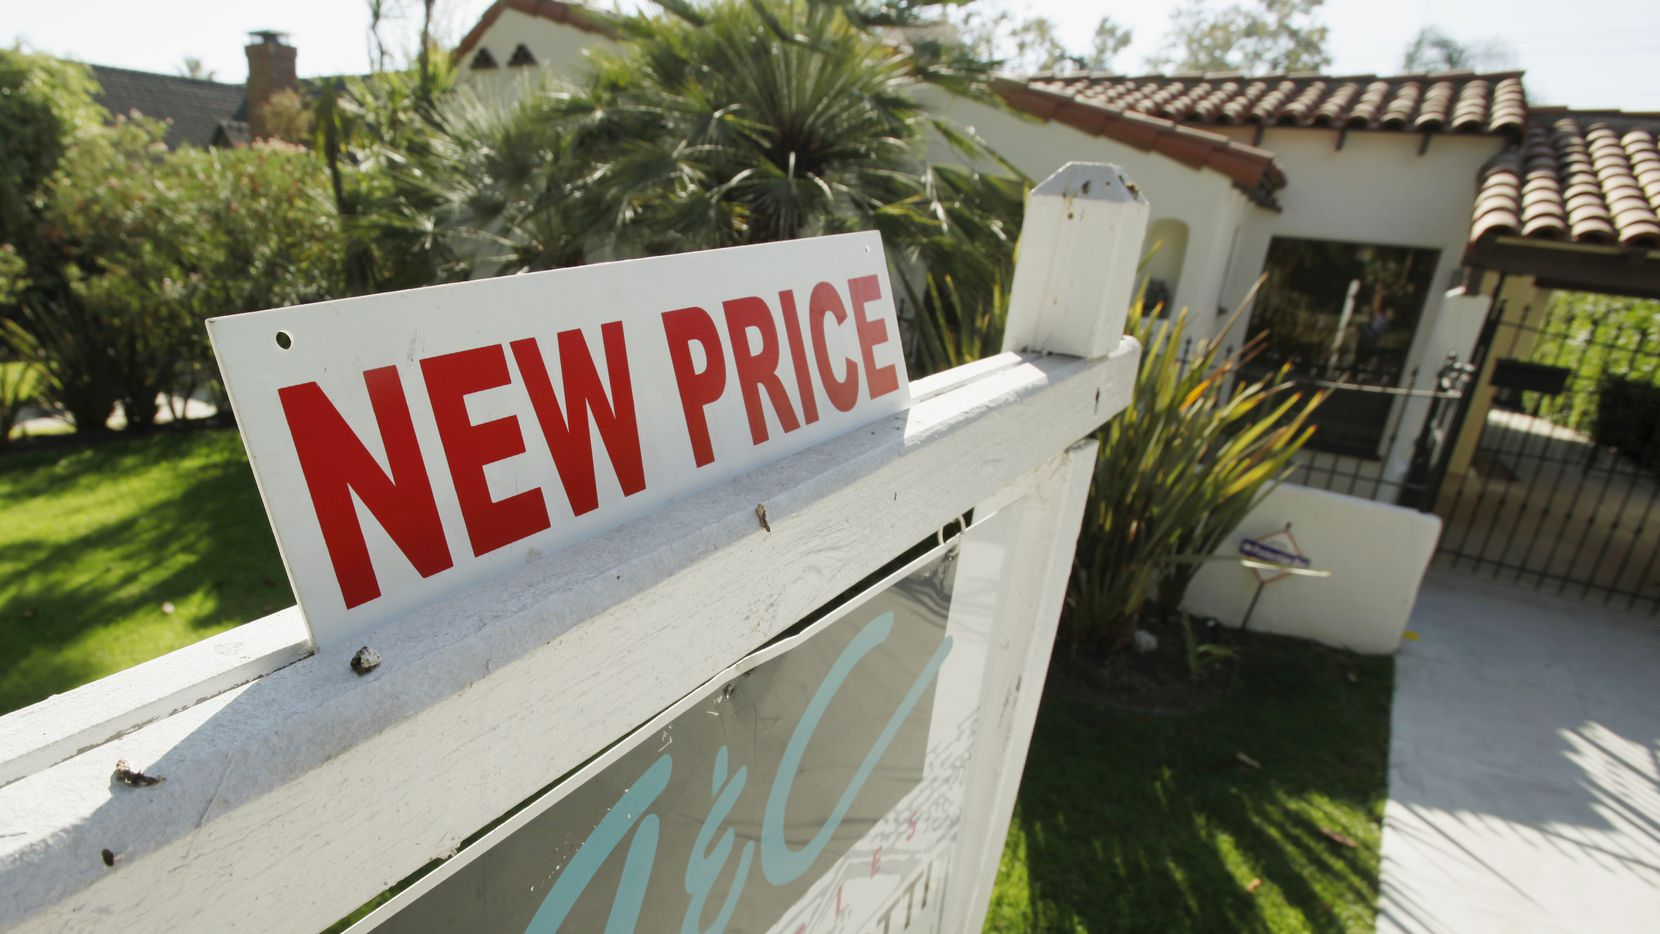 Nationwide home prices were 6.6 percent higher than a year ago in May.